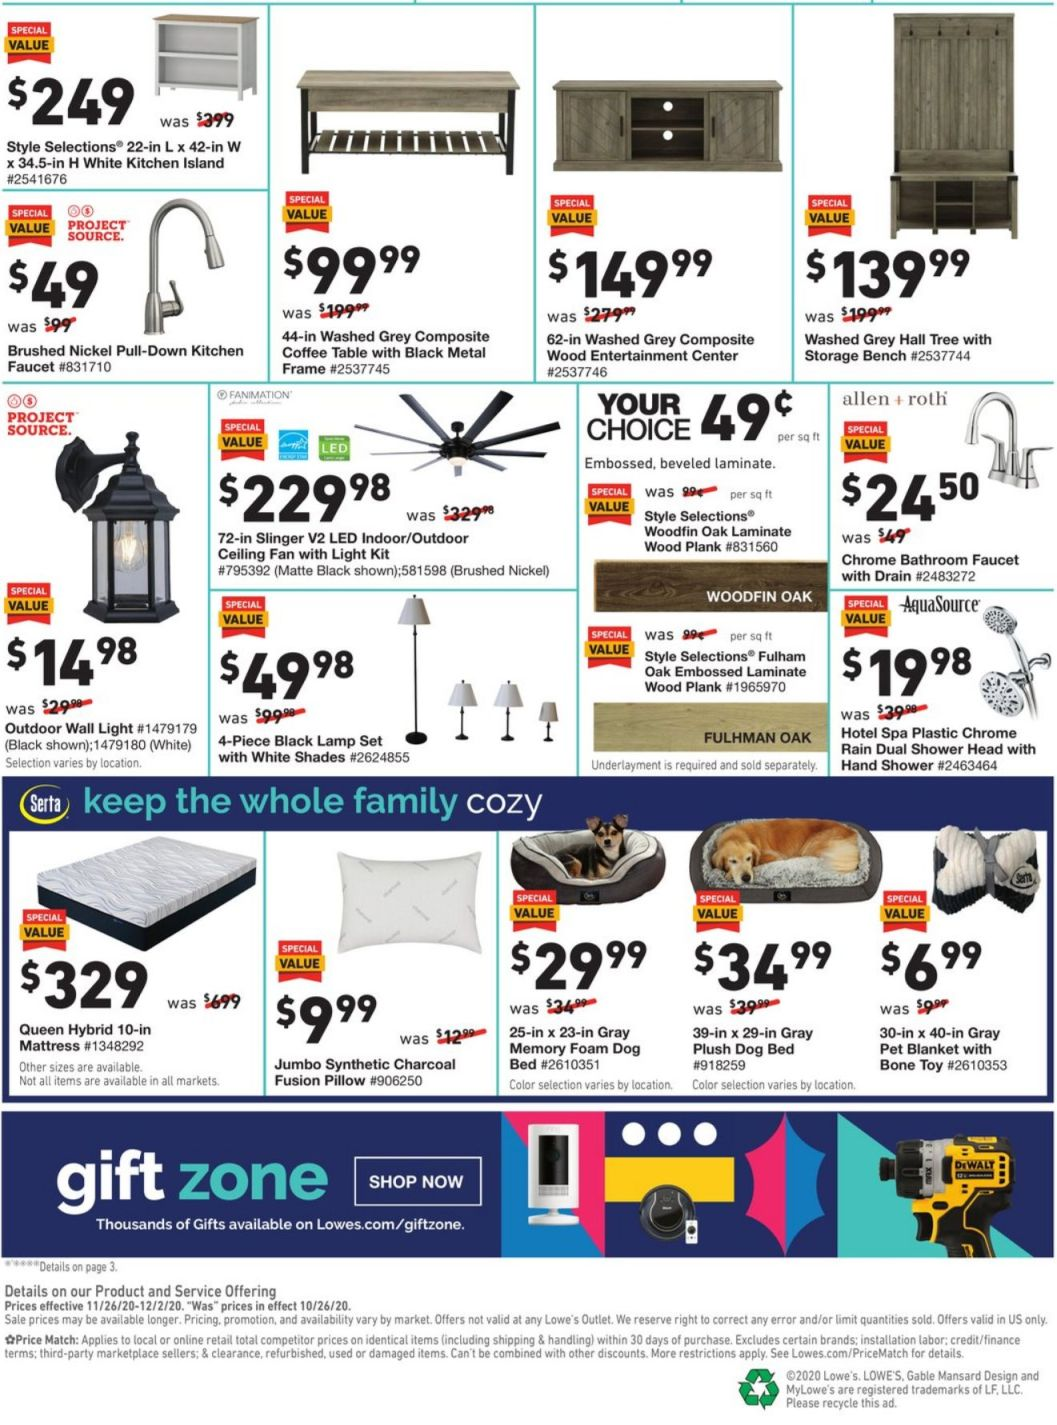 Lowe's Black Friday 2020 Page 4